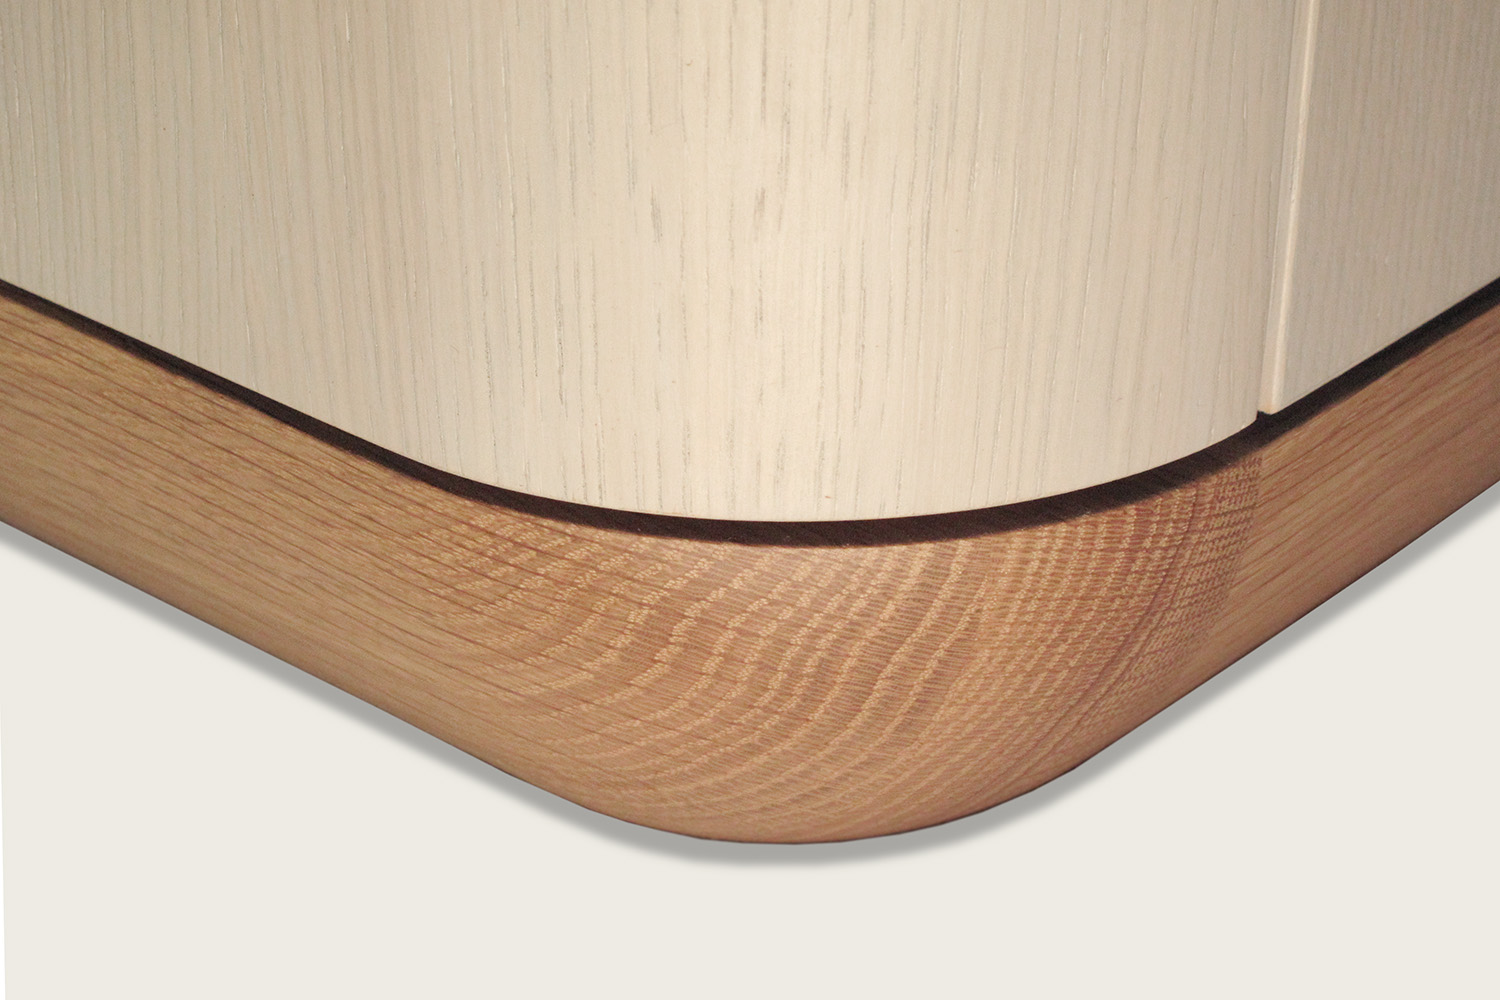 Contour 4-Door Credenza in oak with quartz top (detail) - Speke Klein